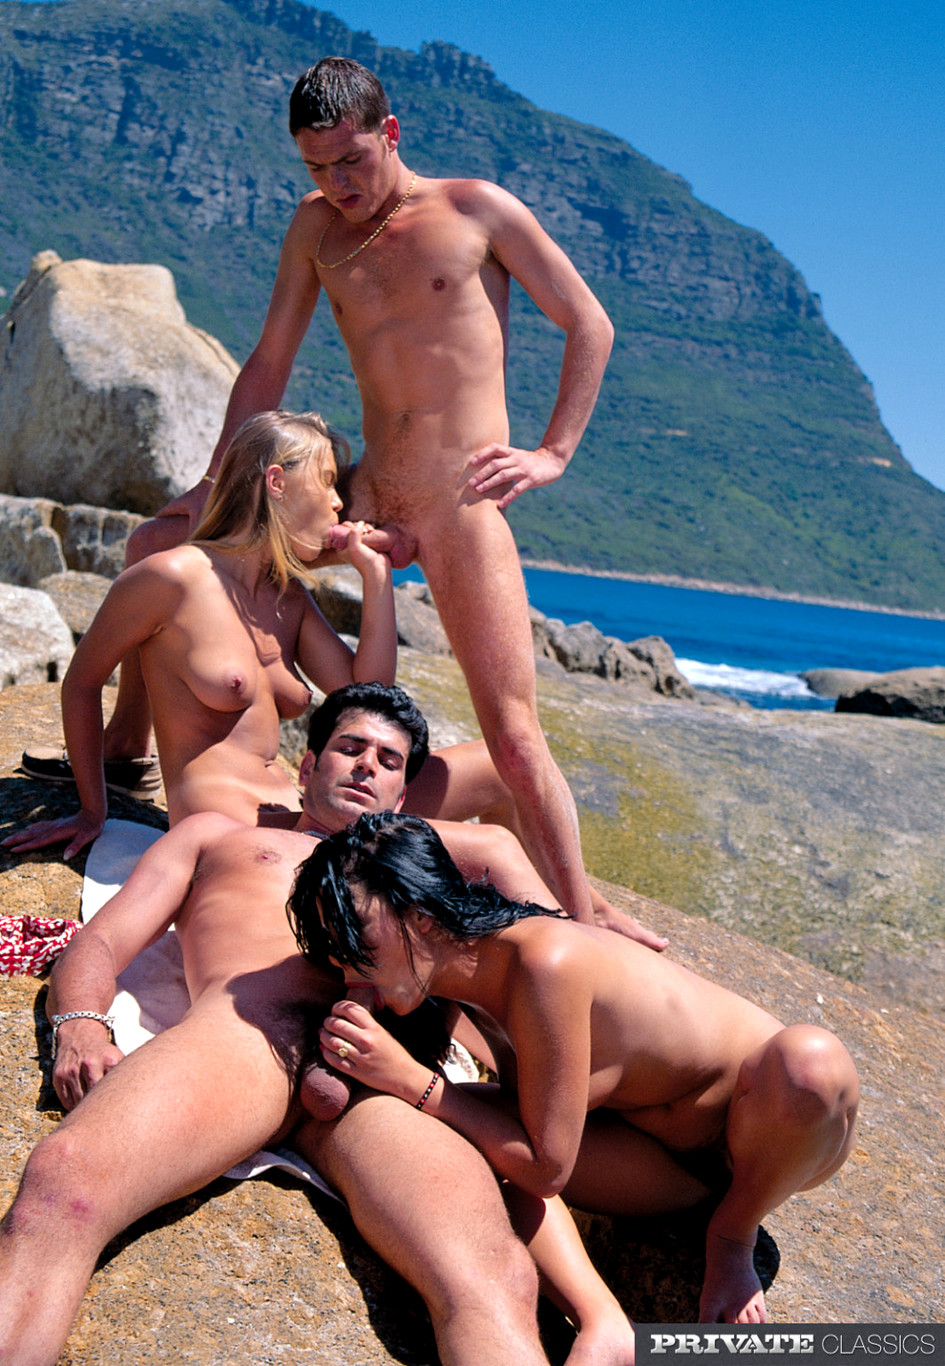 Bitch outdoor orgy 2 love